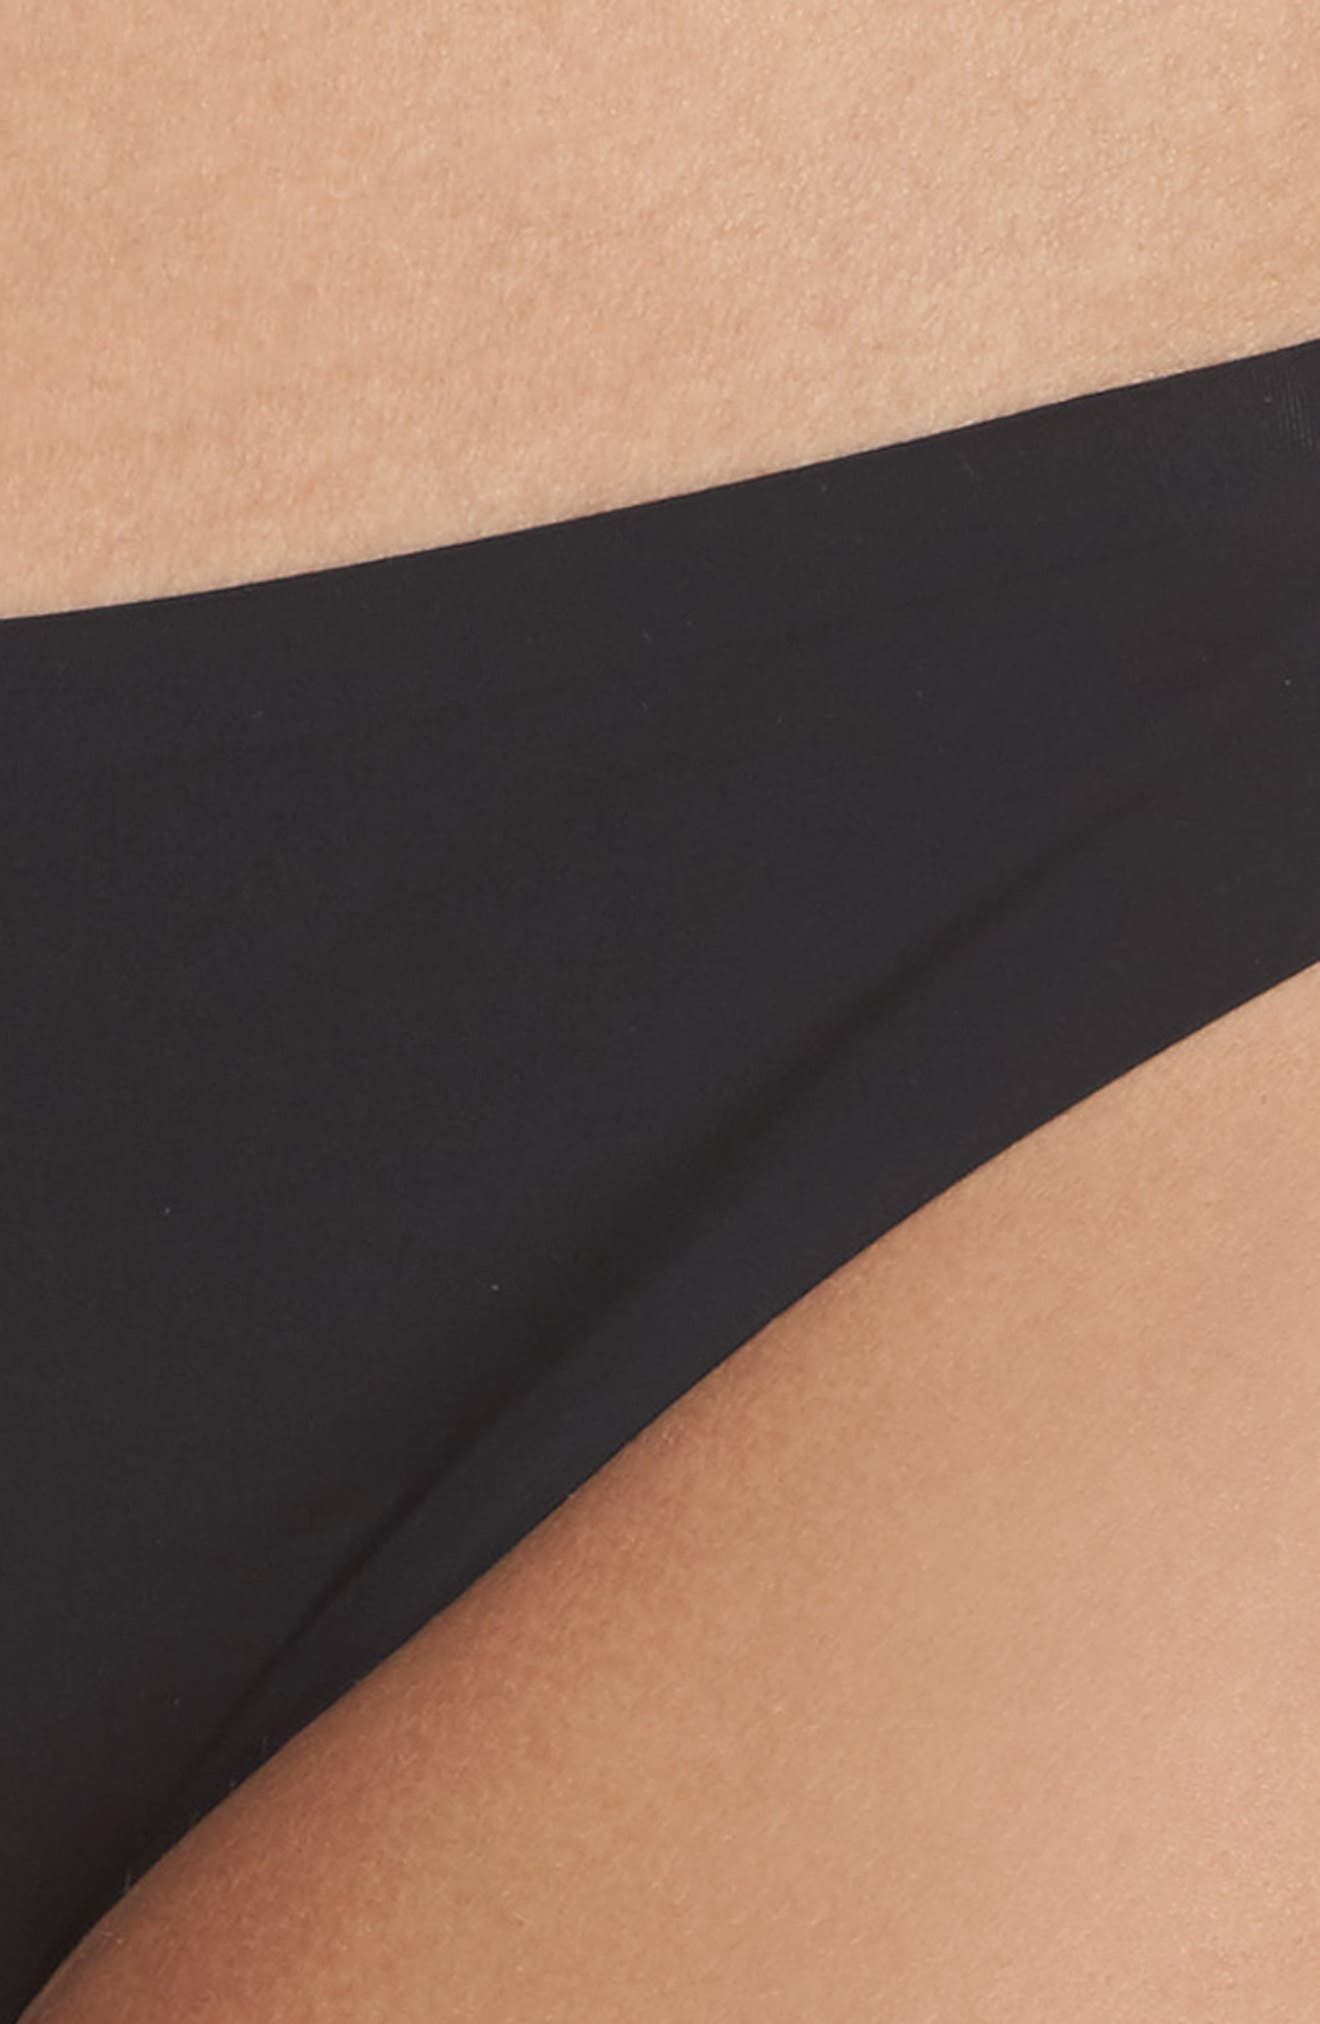 Intimately FP Smooth Thong,                             Alternate thumbnail 4, color,                             001